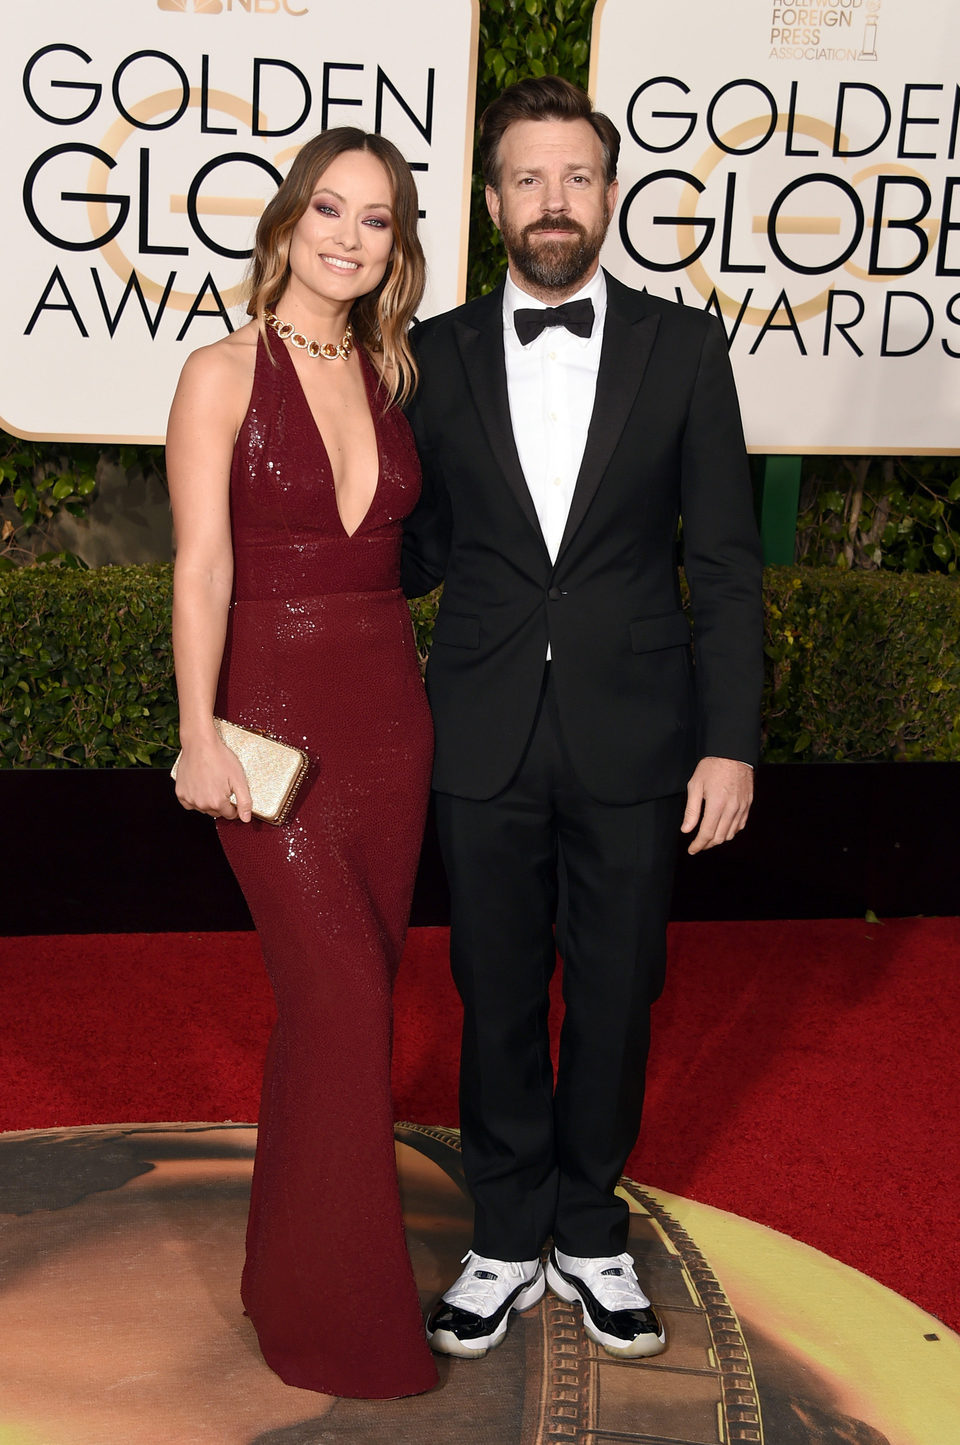 Jason Sudeikis and Olivia Wilde at the 2016 Golden Globes red carpet